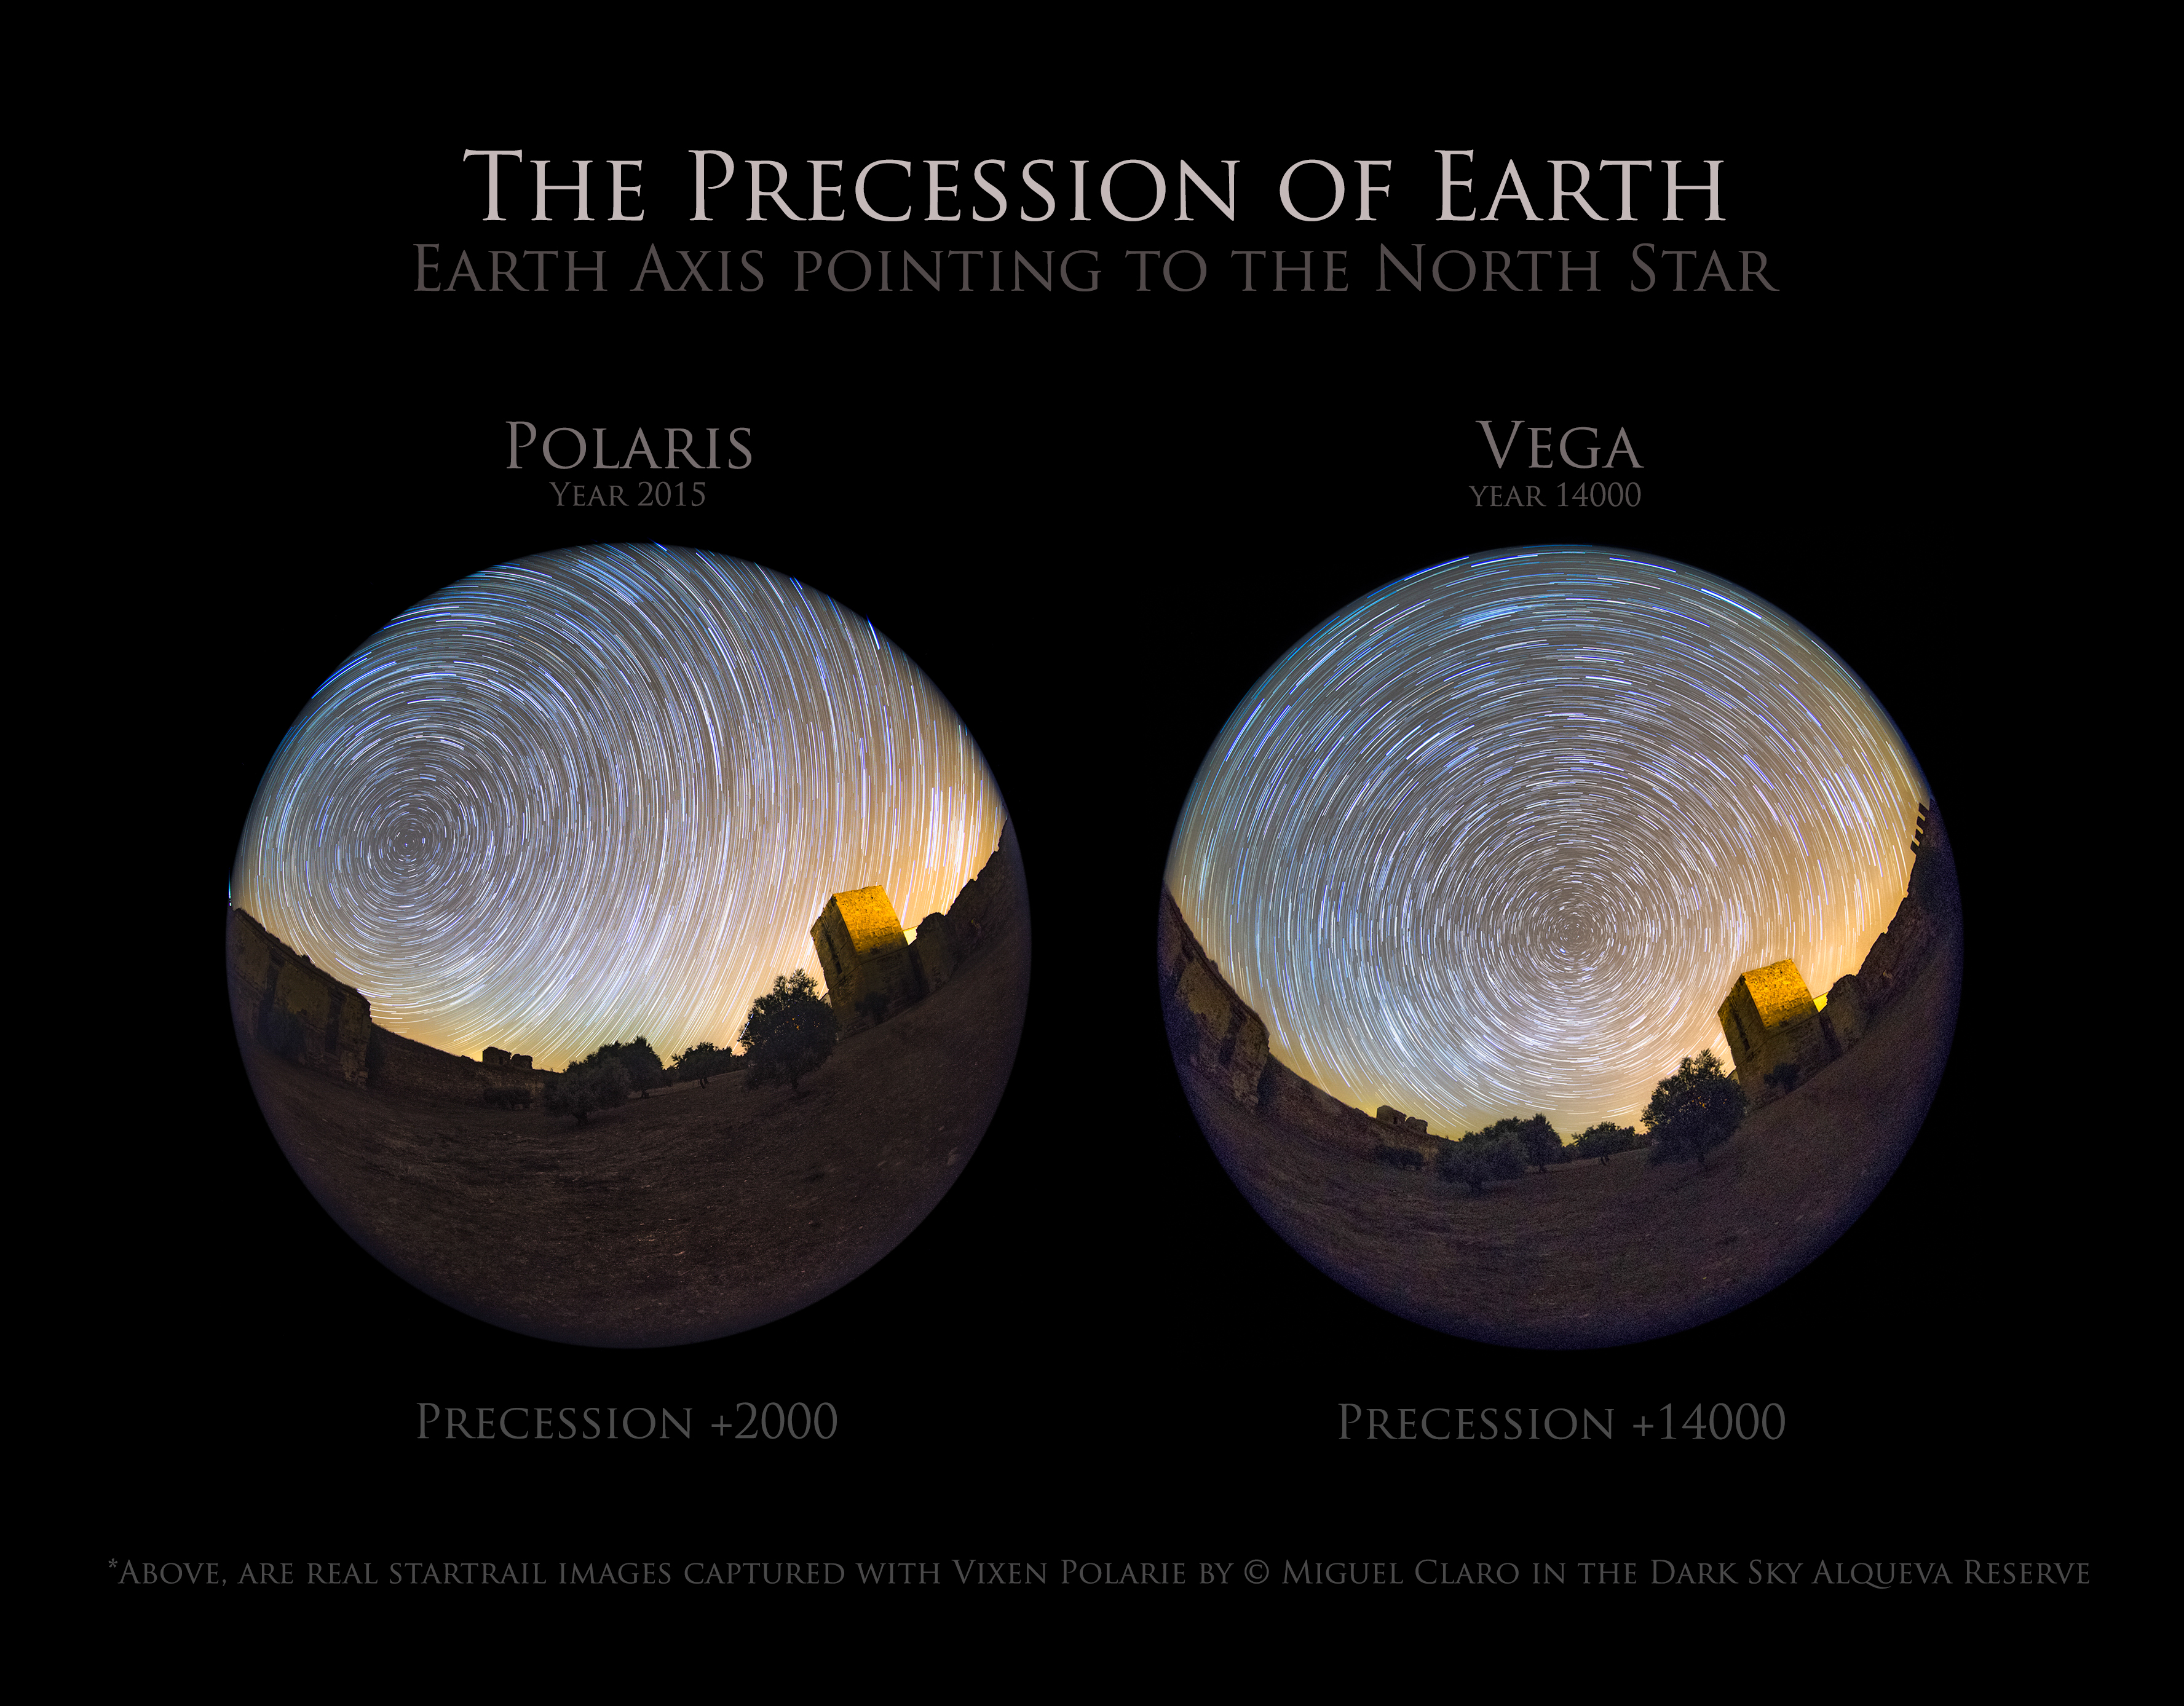 As the World Turns: Night Sky Photographer Snaps Earth's Precession